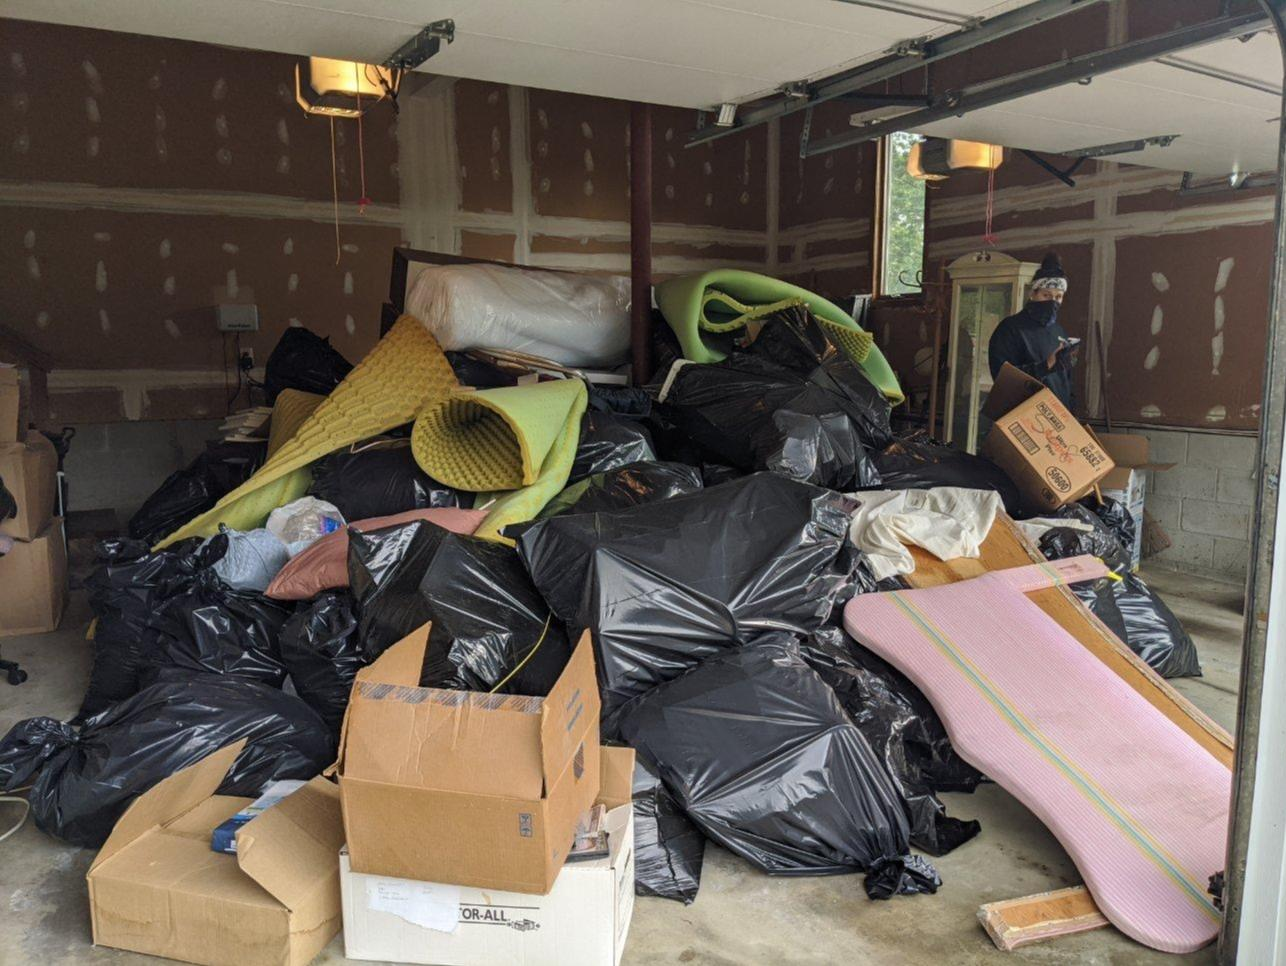 Garage Cleanout in Holmdel, NJ - Before Photo